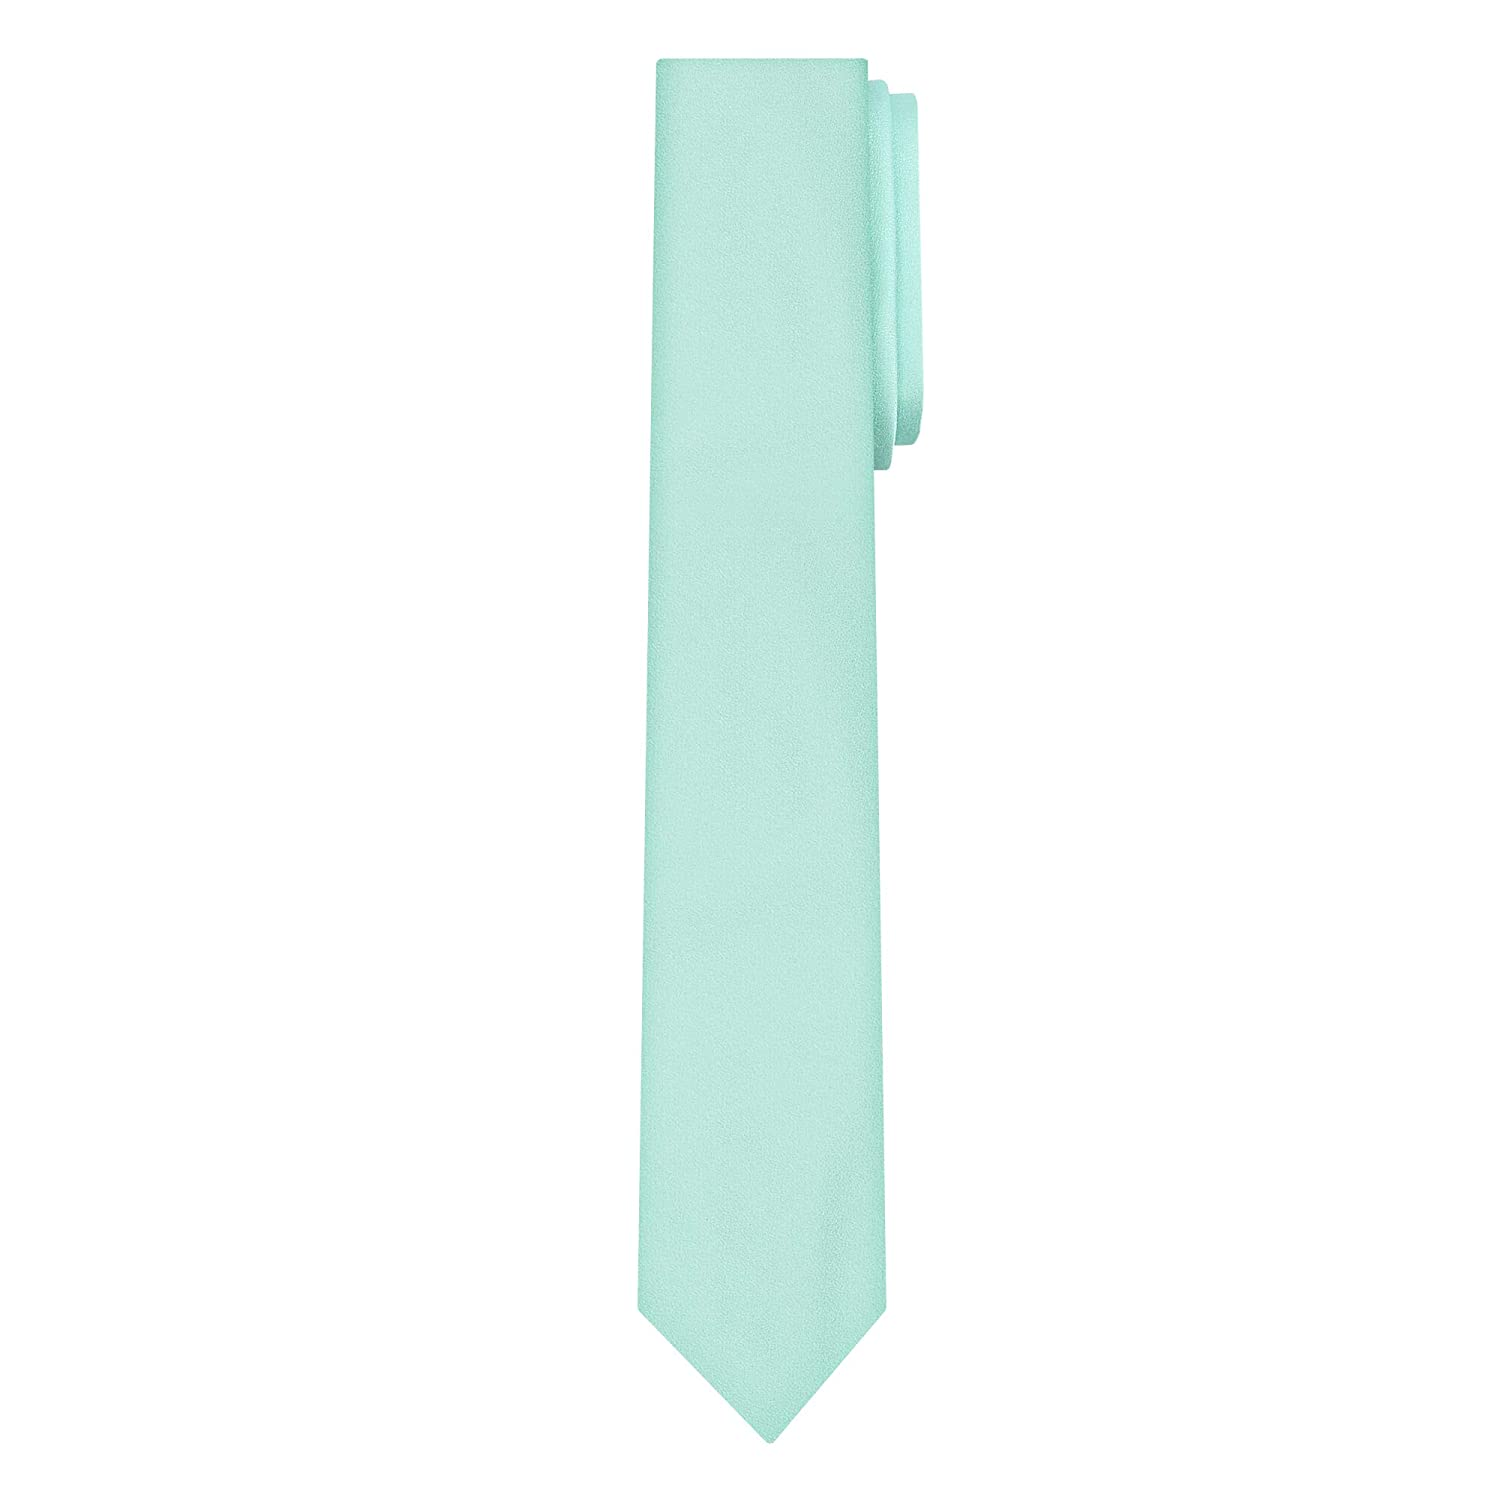 Jacob Alexander Boys Tone on Tone Metallic Neck Tie Champagne